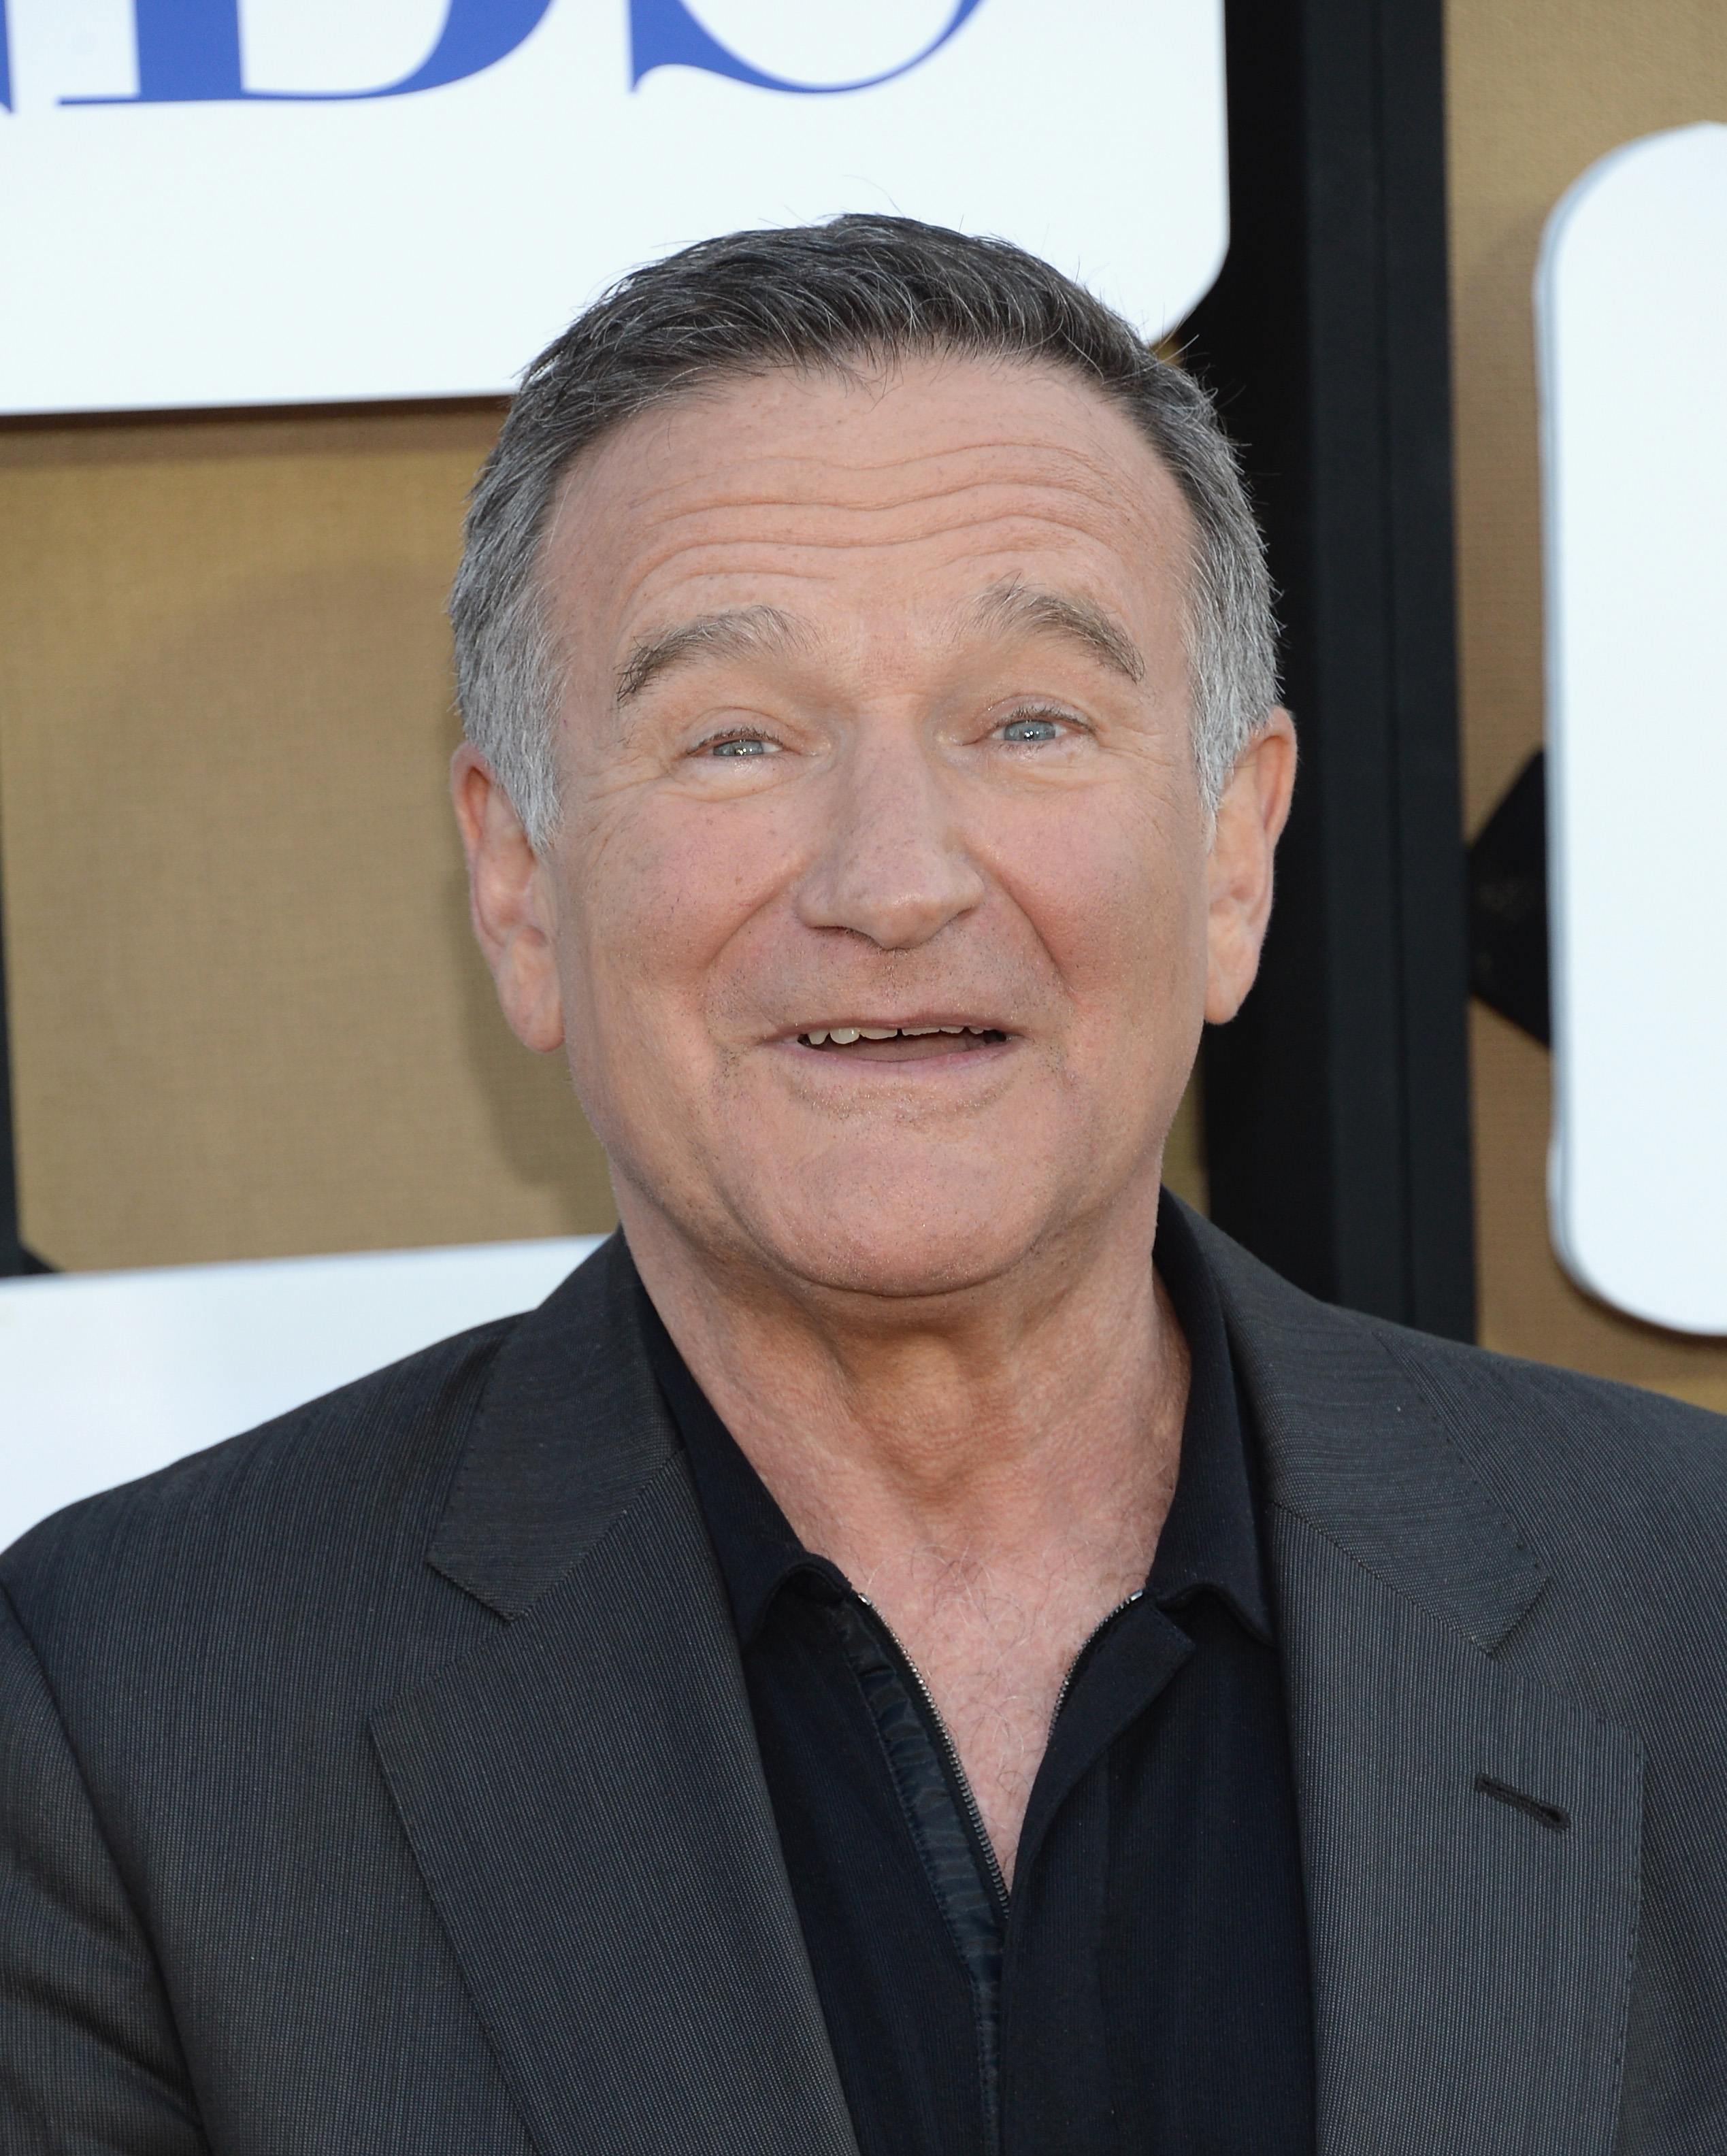 50 interesting facts about robin williams he had open